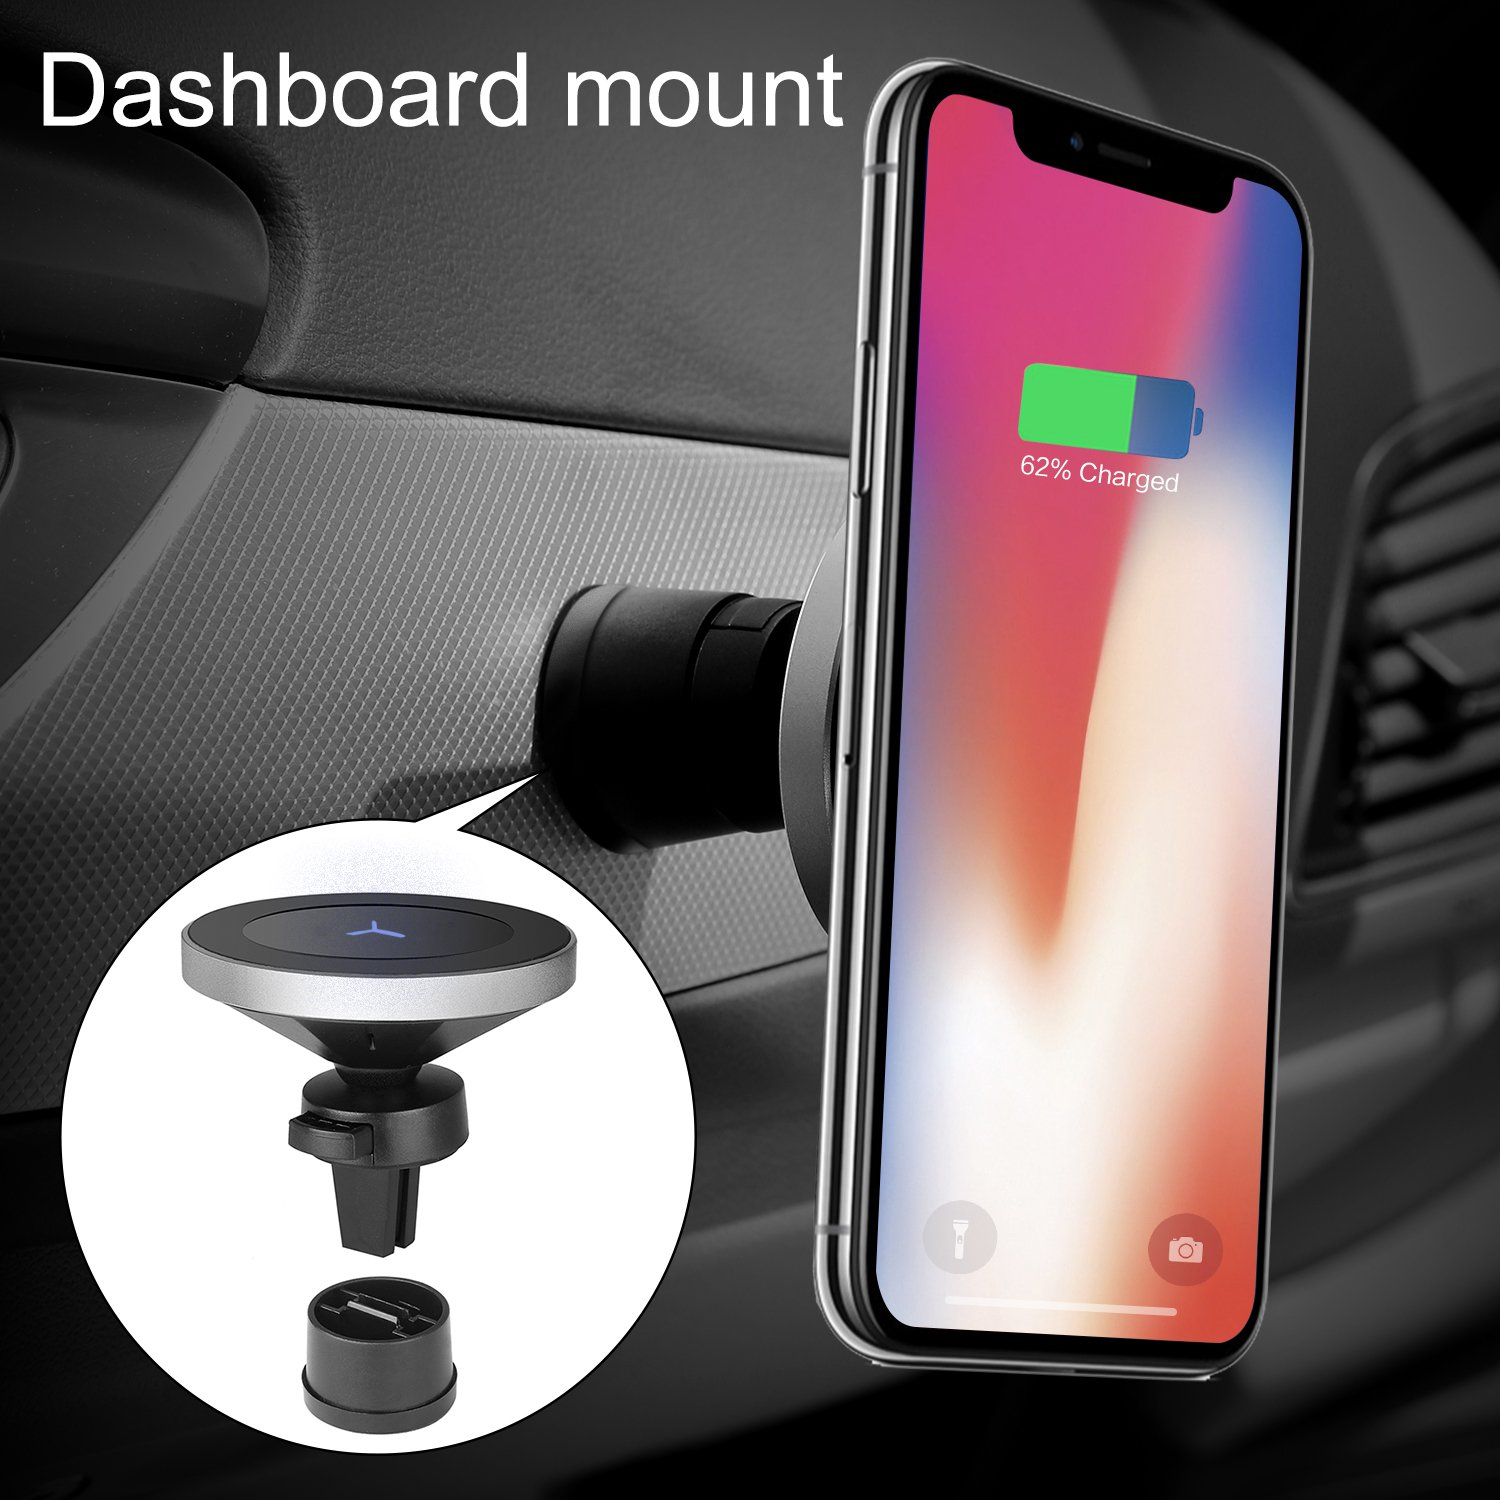 Qinoren Magnetic Wireless Car Charger Air Vent Phone Holder,Wireless Charging for Samsung S9/S9+/S8/S8+/S7/S7 Edge Note 8、Apple iPhone X/8/8 Plus and All QI-Enabled Devices(No Car Charger) by Qinoren (Image #5)